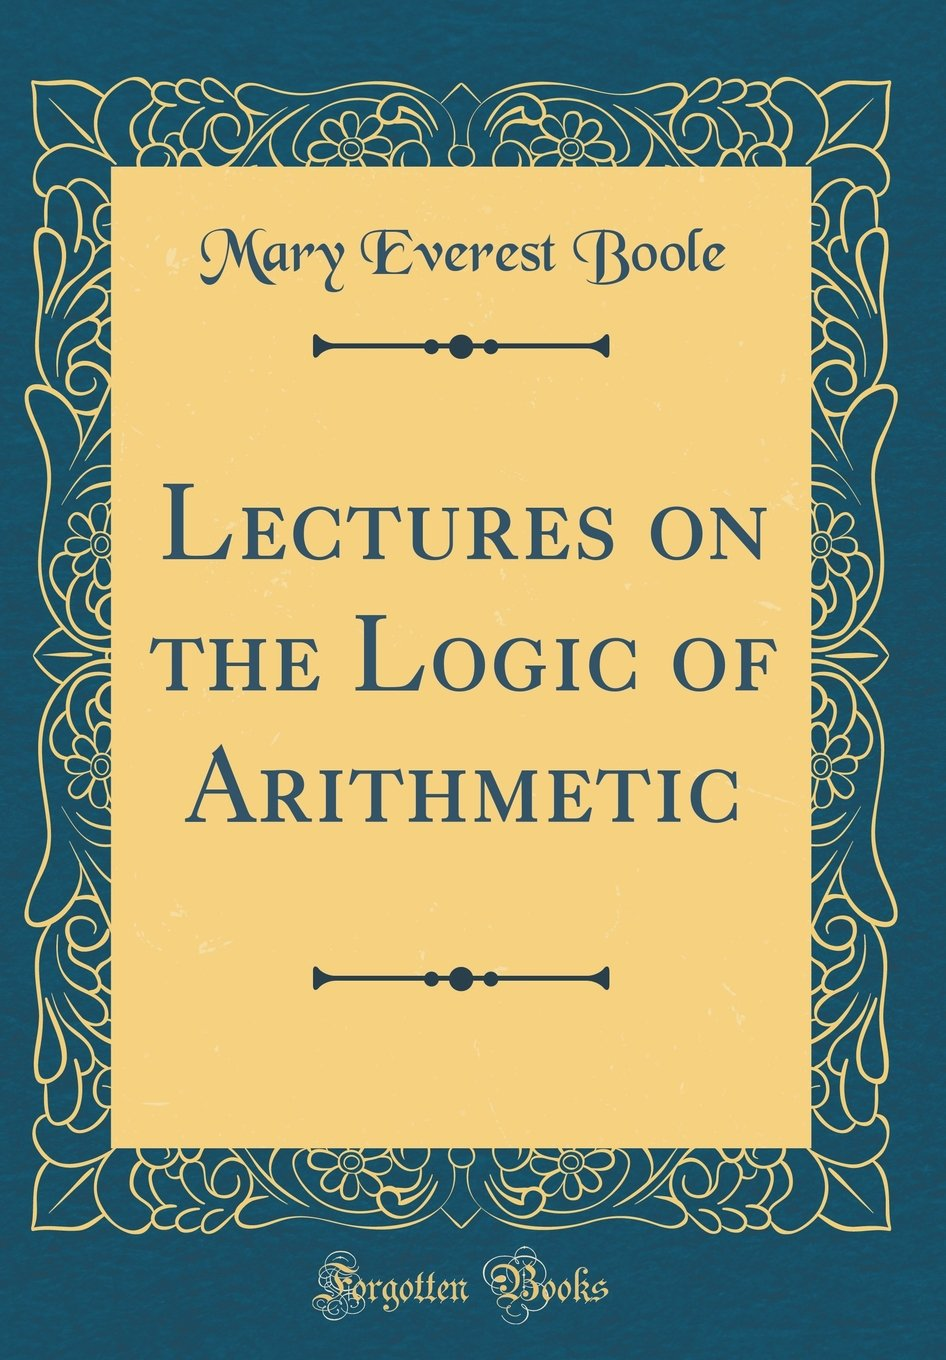 Lectures on the logic of arithmetic